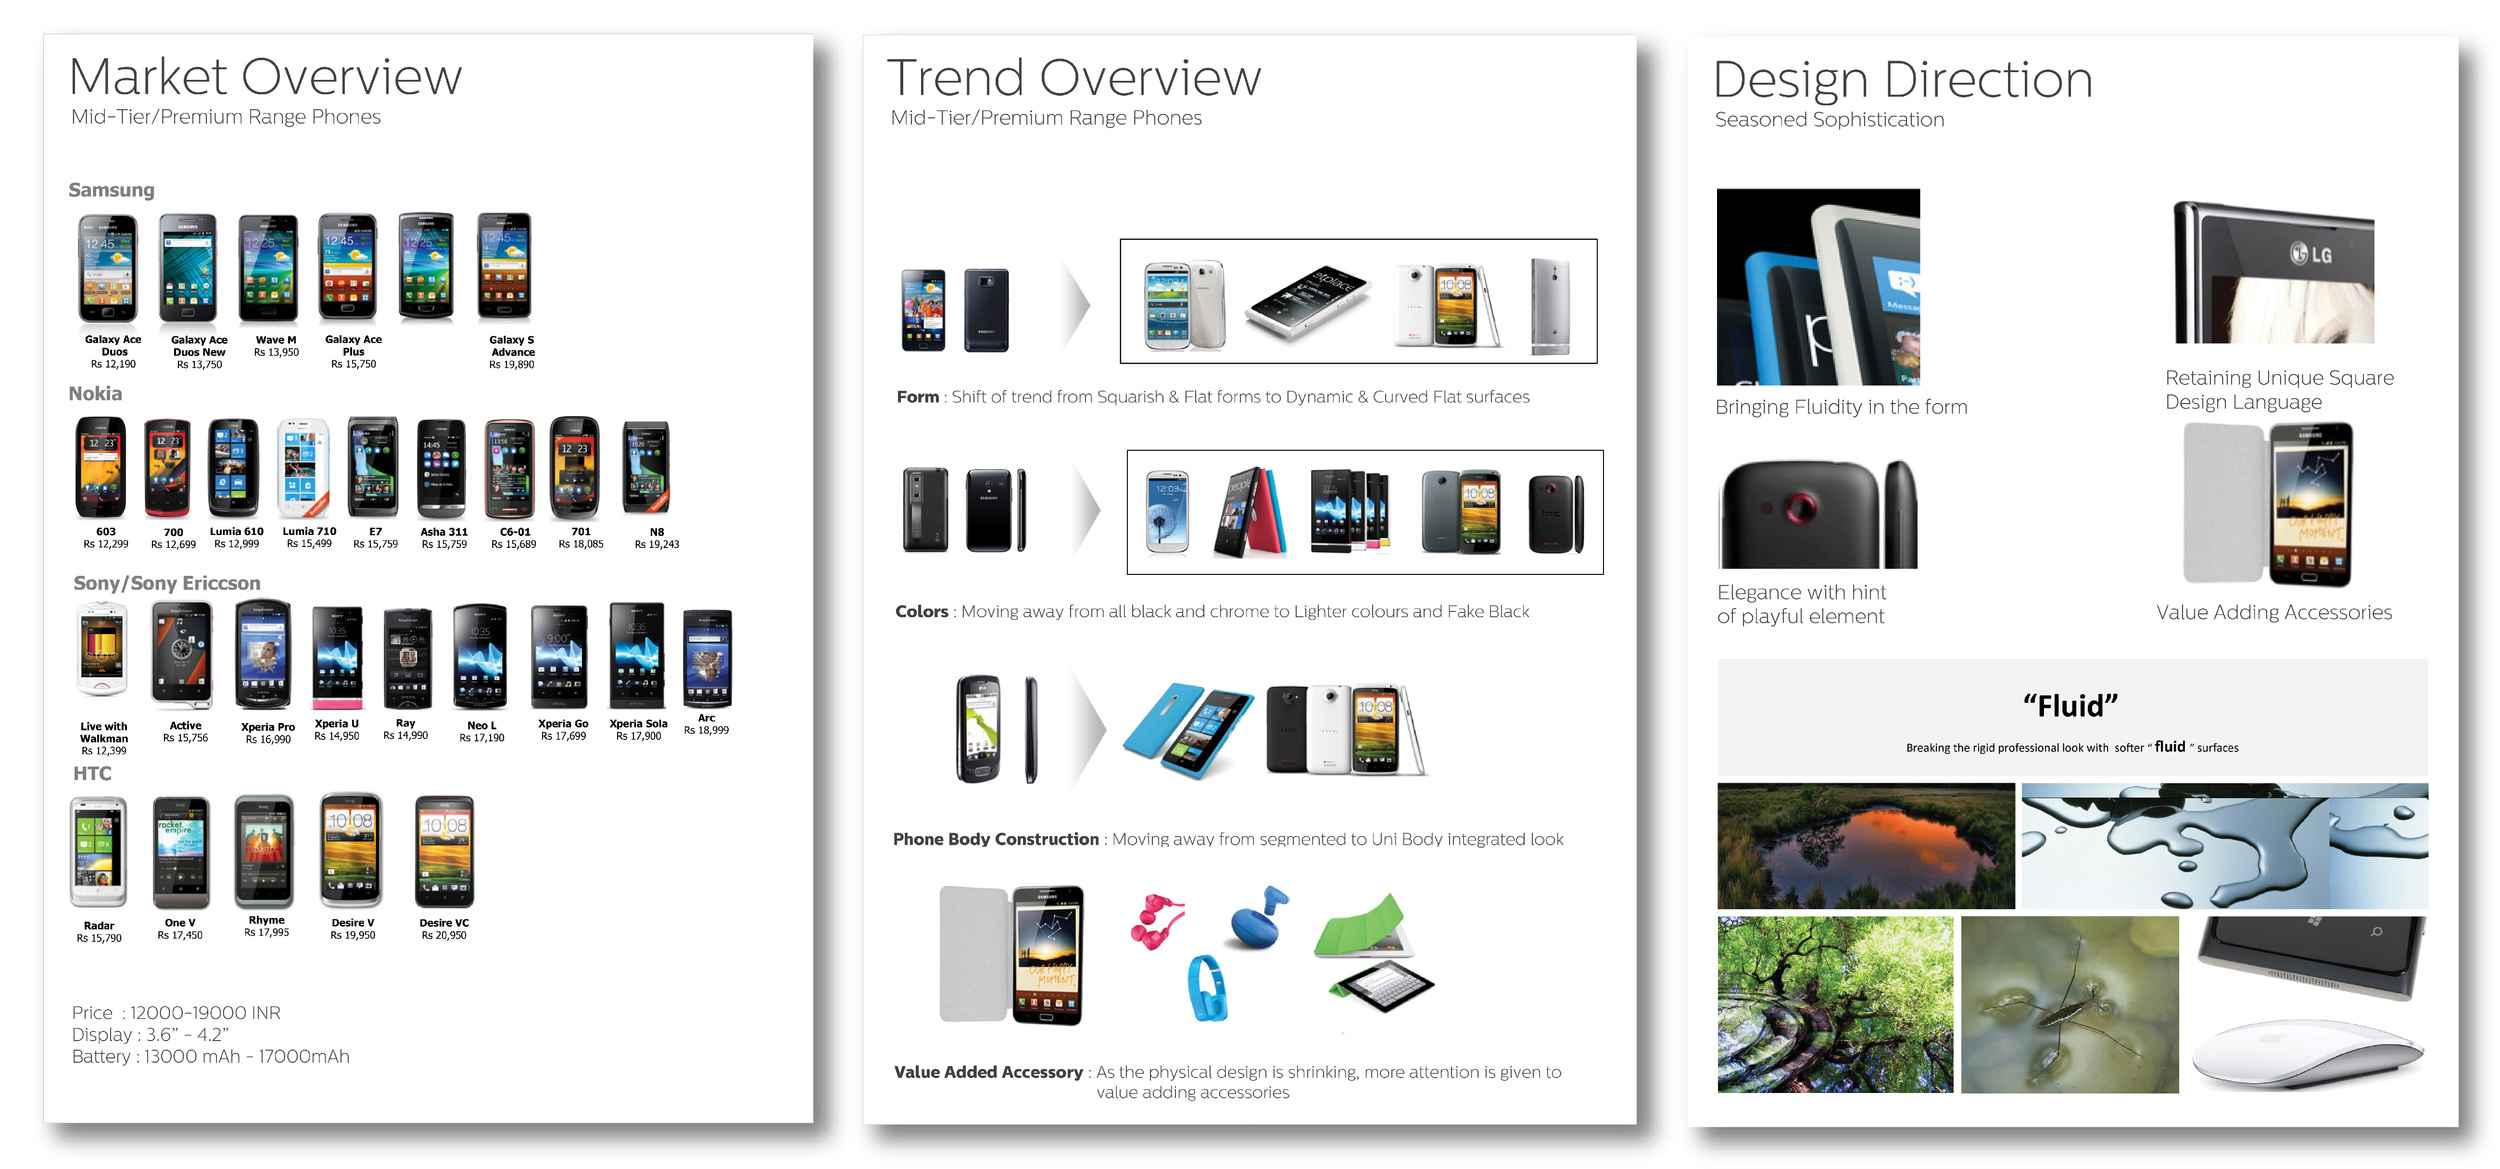 Design direction document for MId Segment Premium Phones